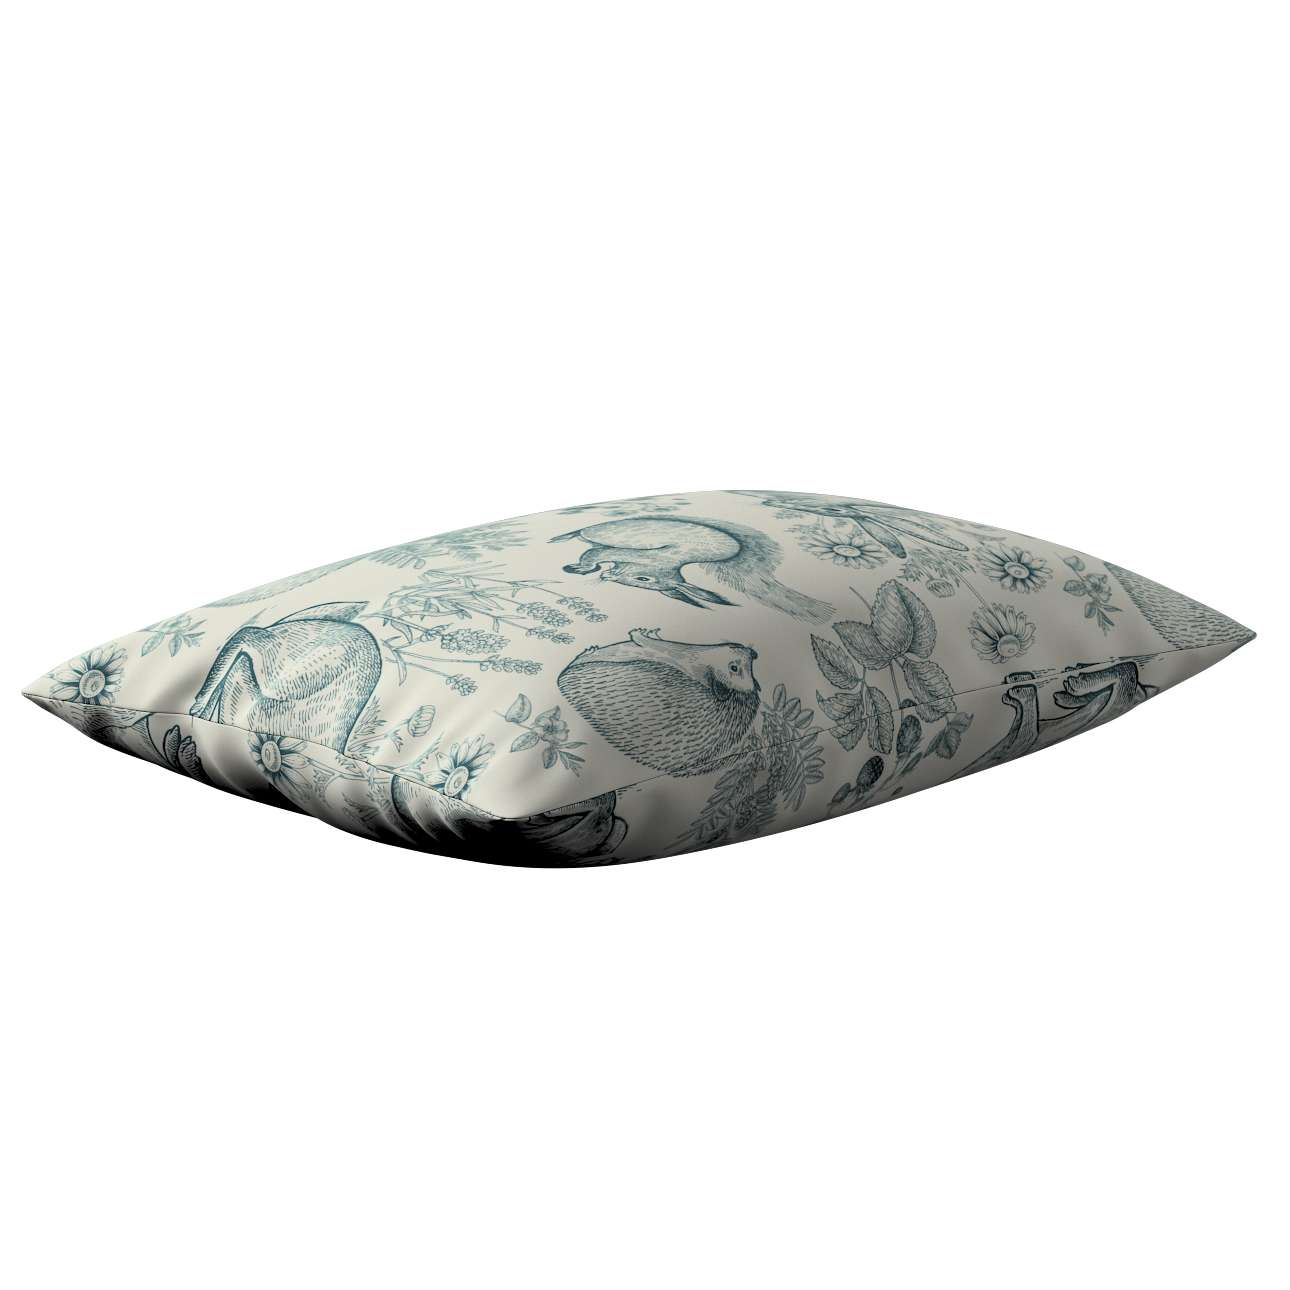 Milly rectangular cushion cover in collection Magic Collection, fabric: 500-04